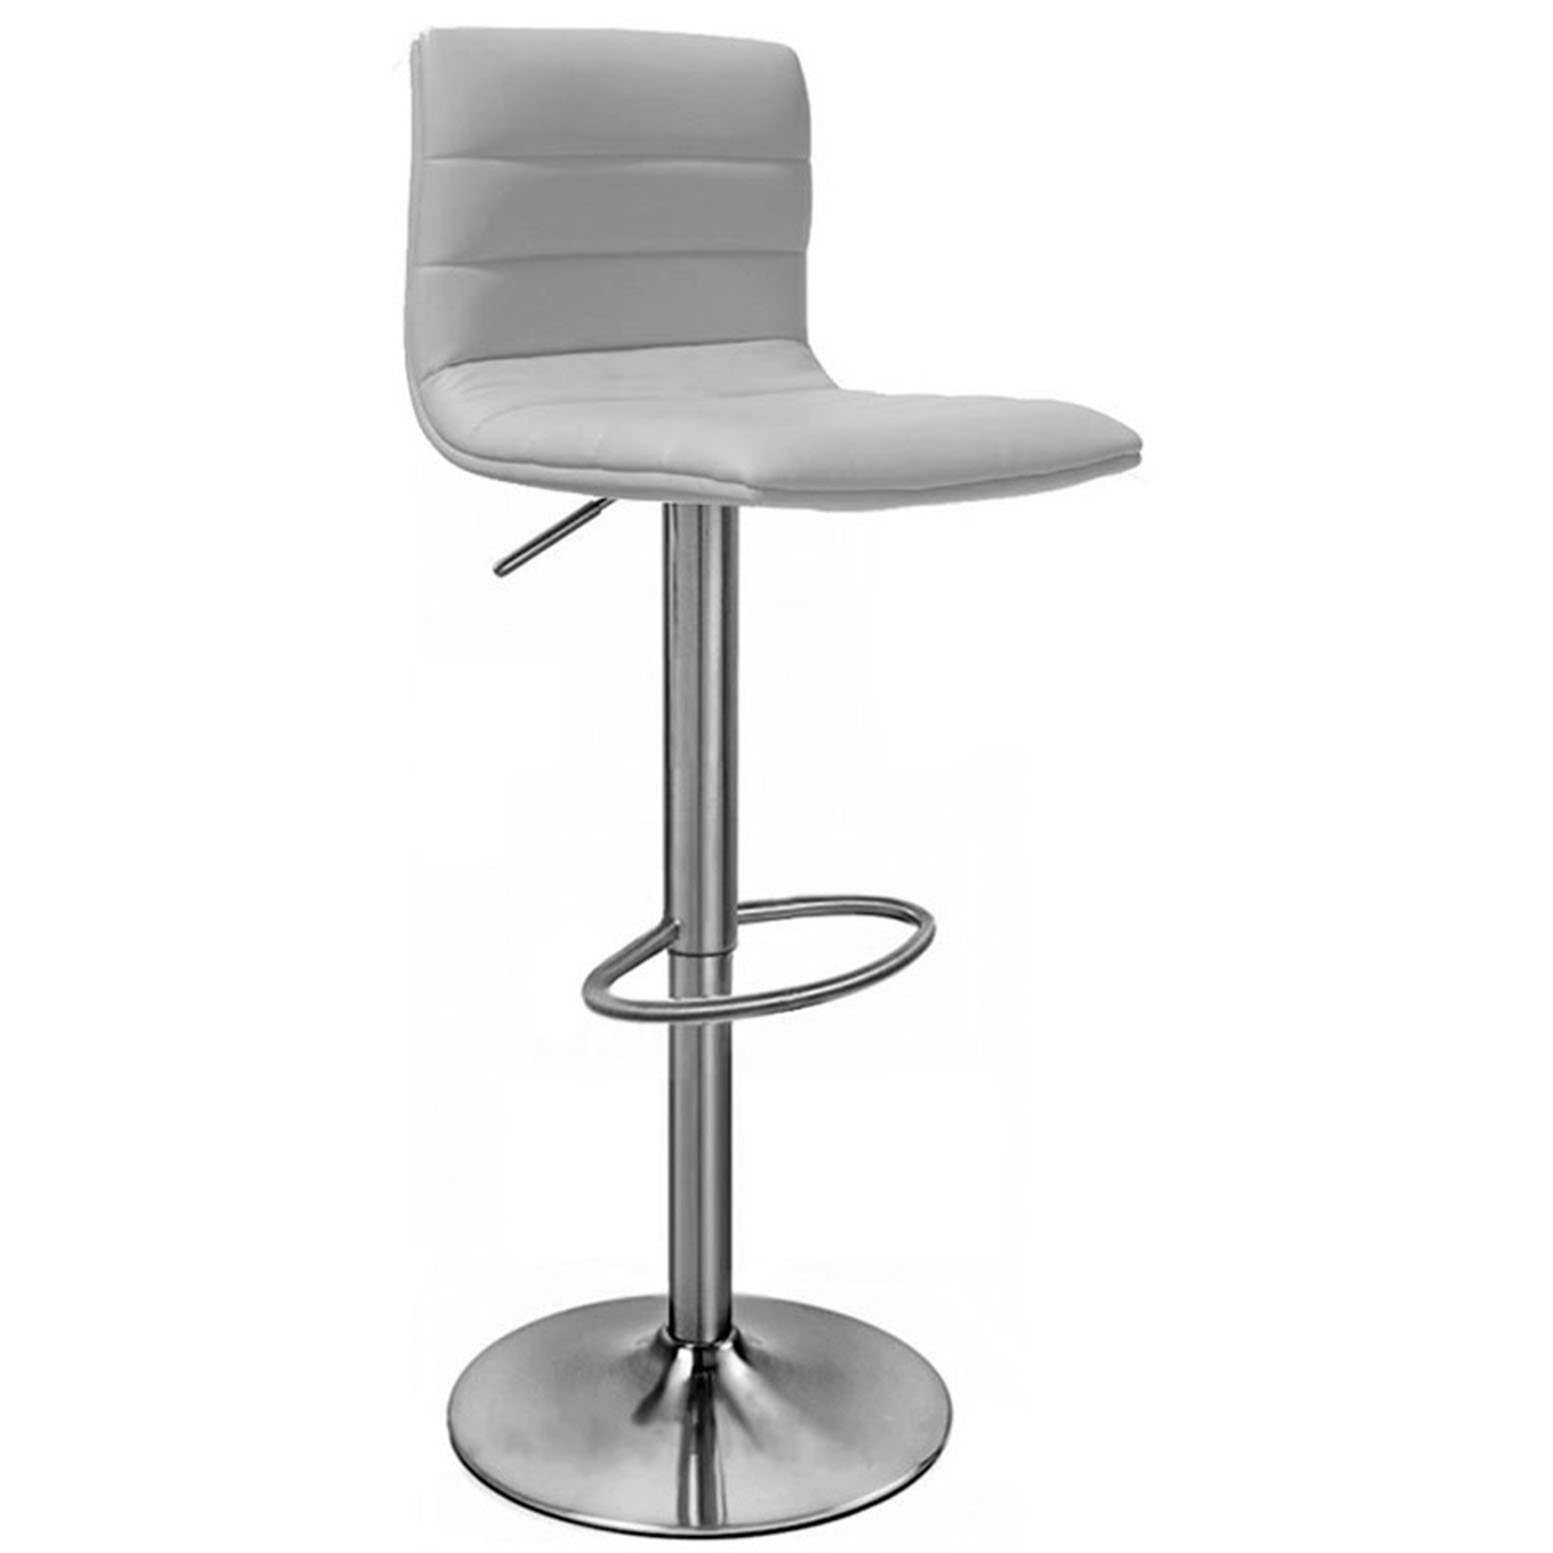 Aldo Brushed Bar Stool - White Product Image